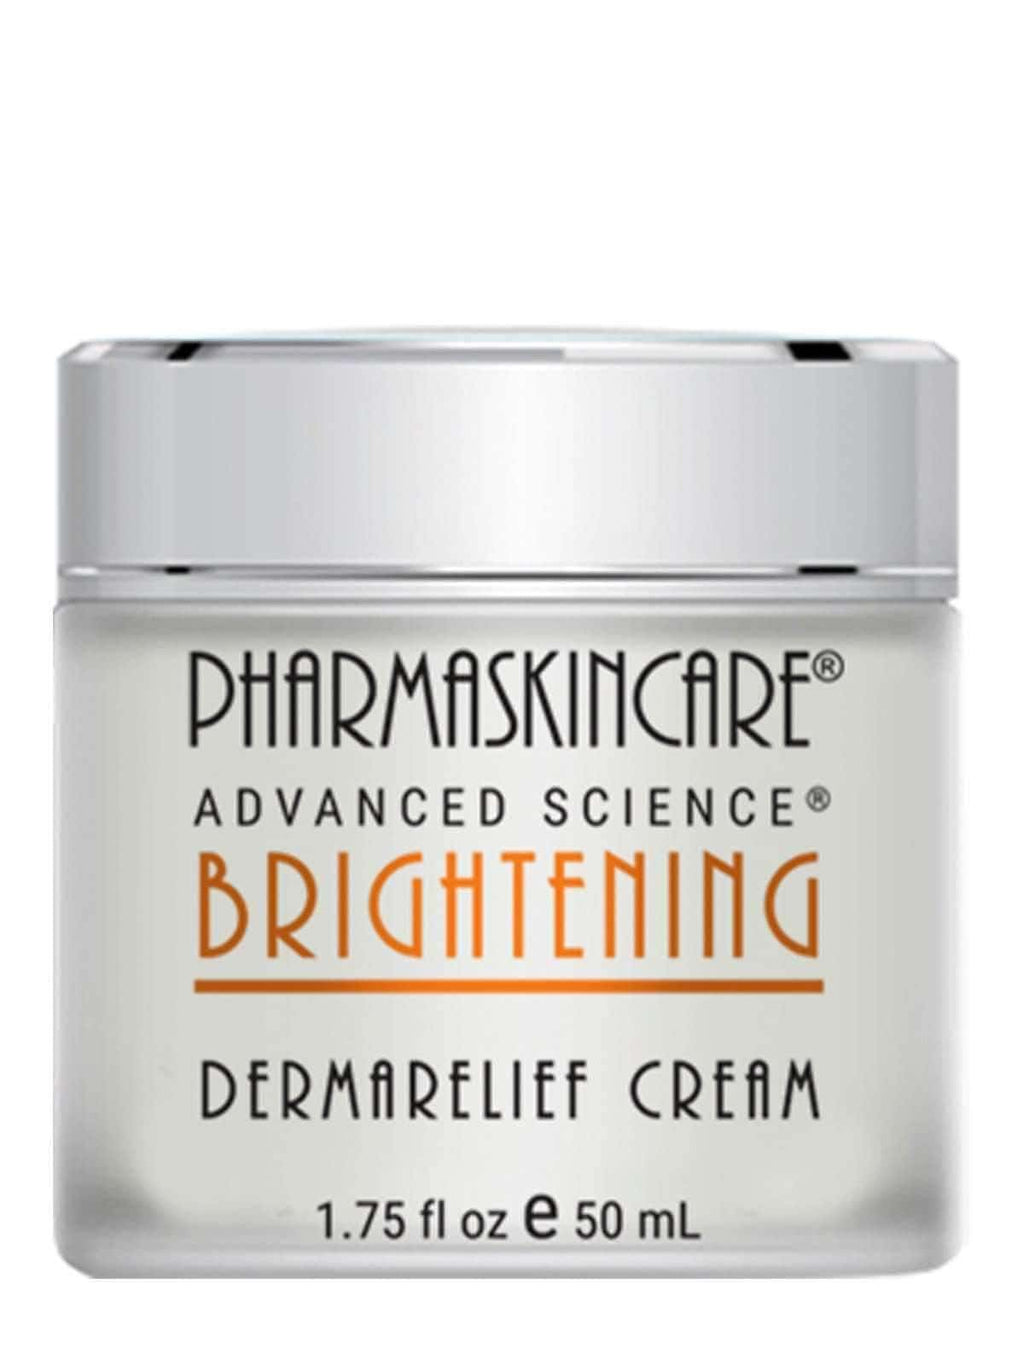 Brightening Dermarelief Cream - Pharmaskincare